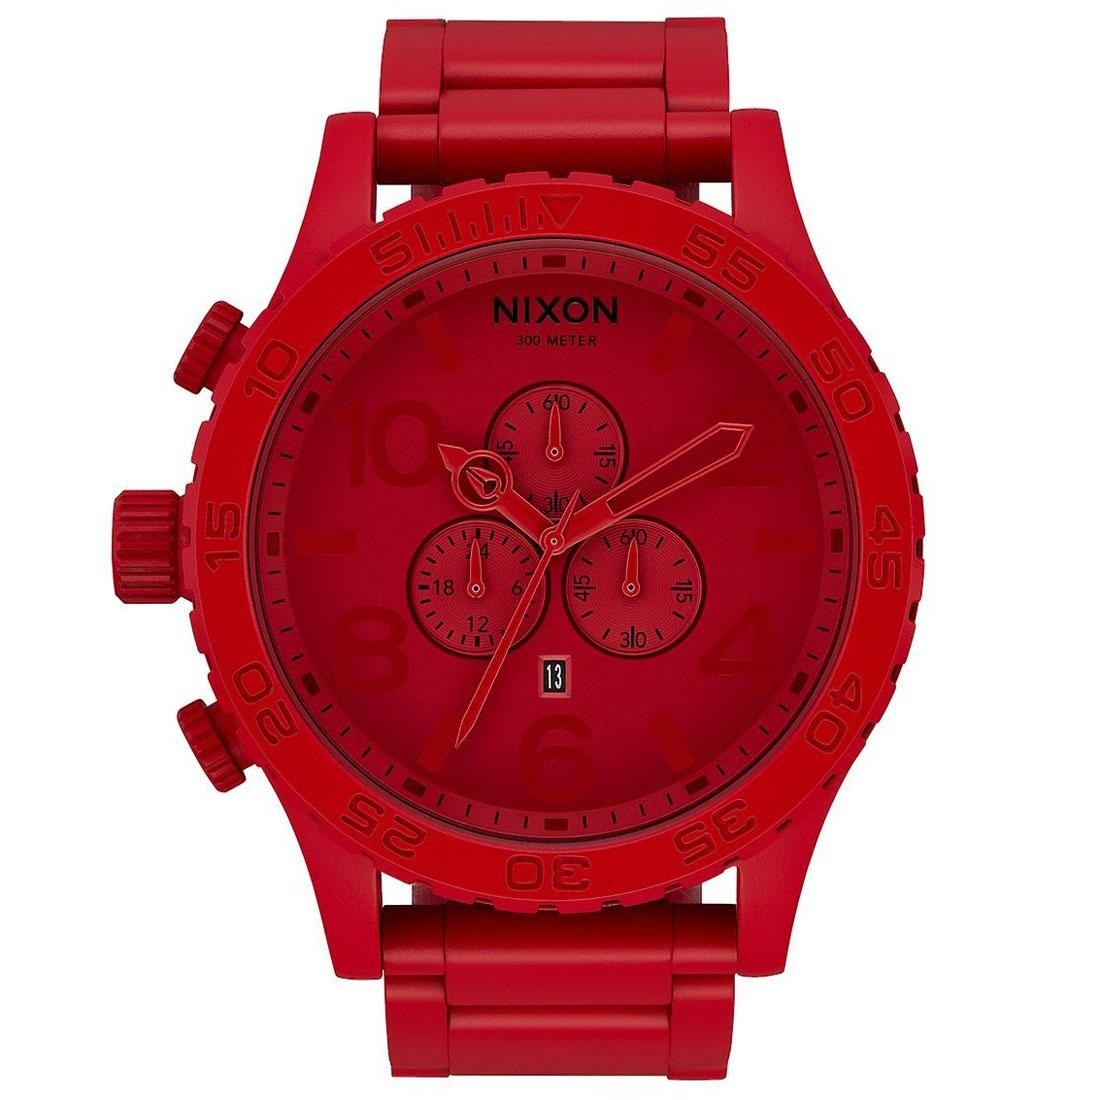 Nixon 51-30 Chrono Watch - RED (red / all red)